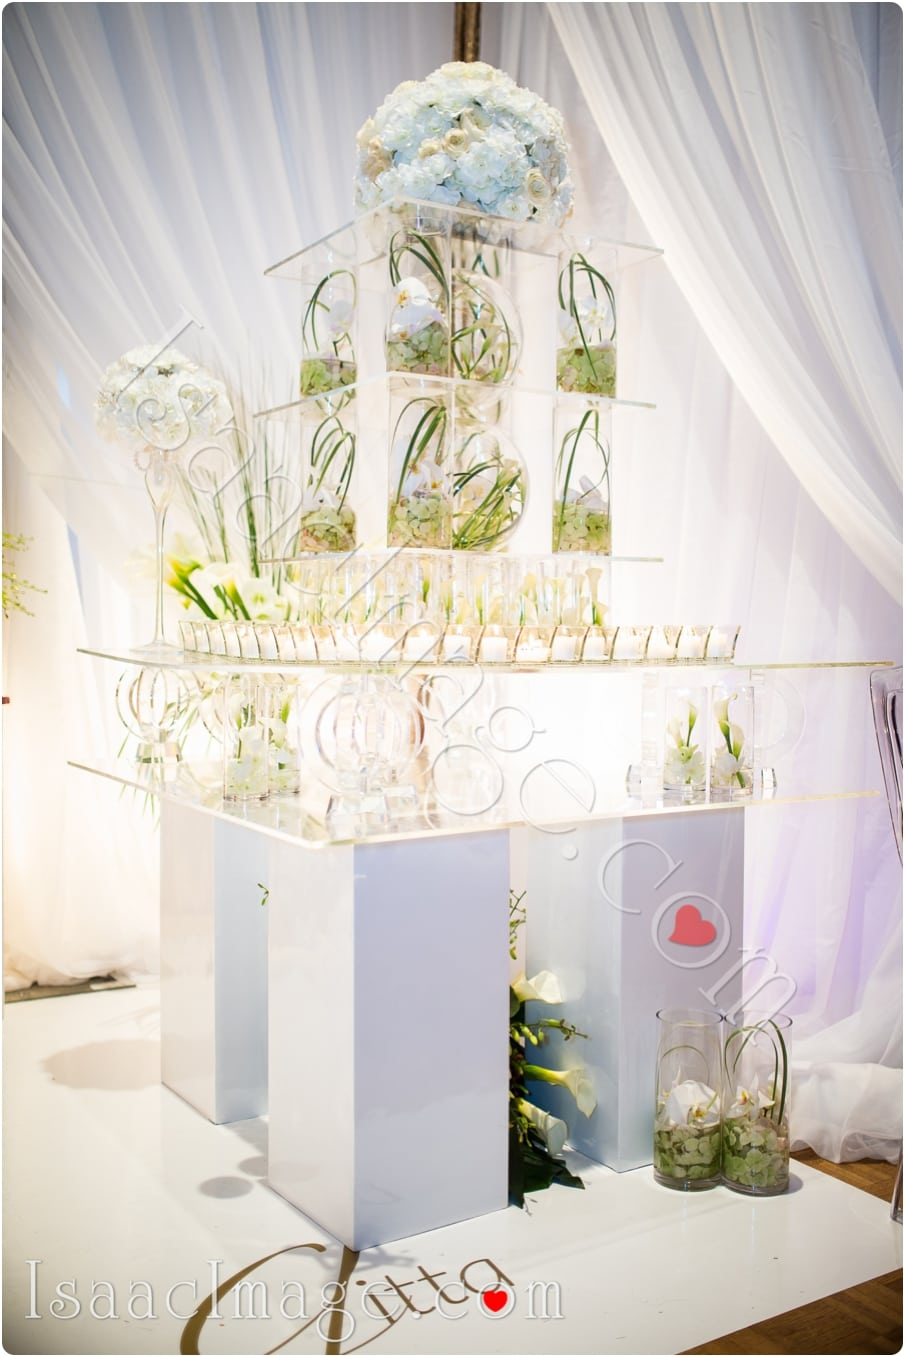 0206 wedluxe bridal show isaacimage.jpg